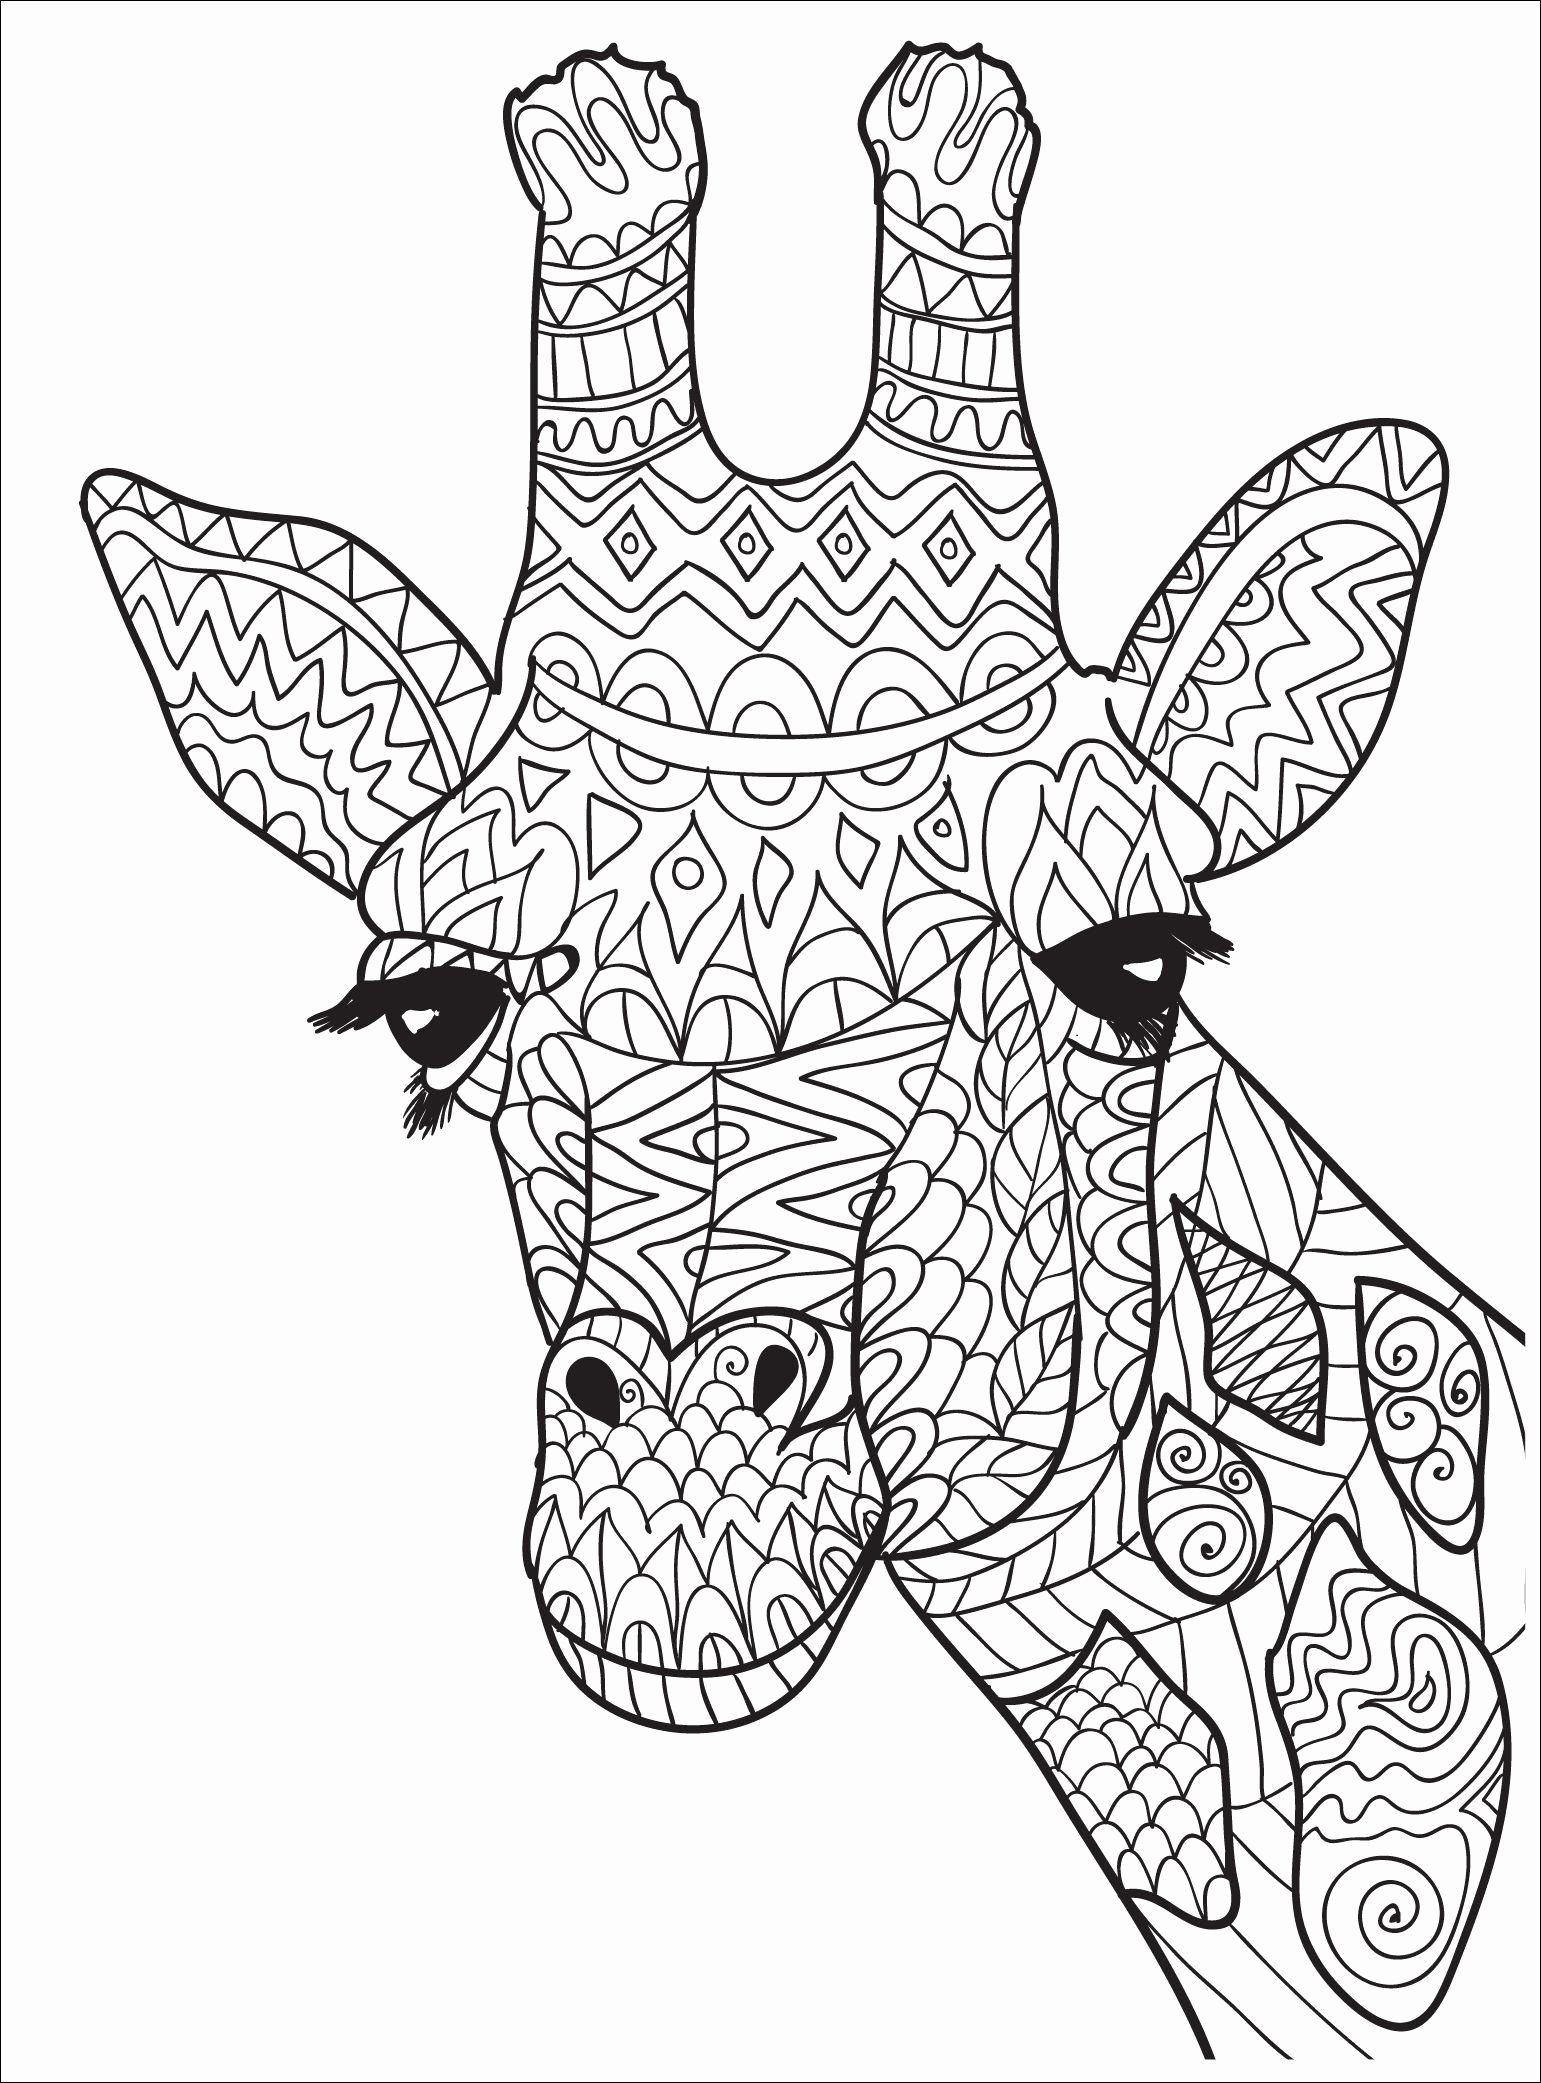 Advanced Coloring Pages Animals Unique 23 New Image Cute Animal Coloring Page For Adults In 2020 Giraffe Coloring Pages Animal Coloring Pages Giraffe Colors